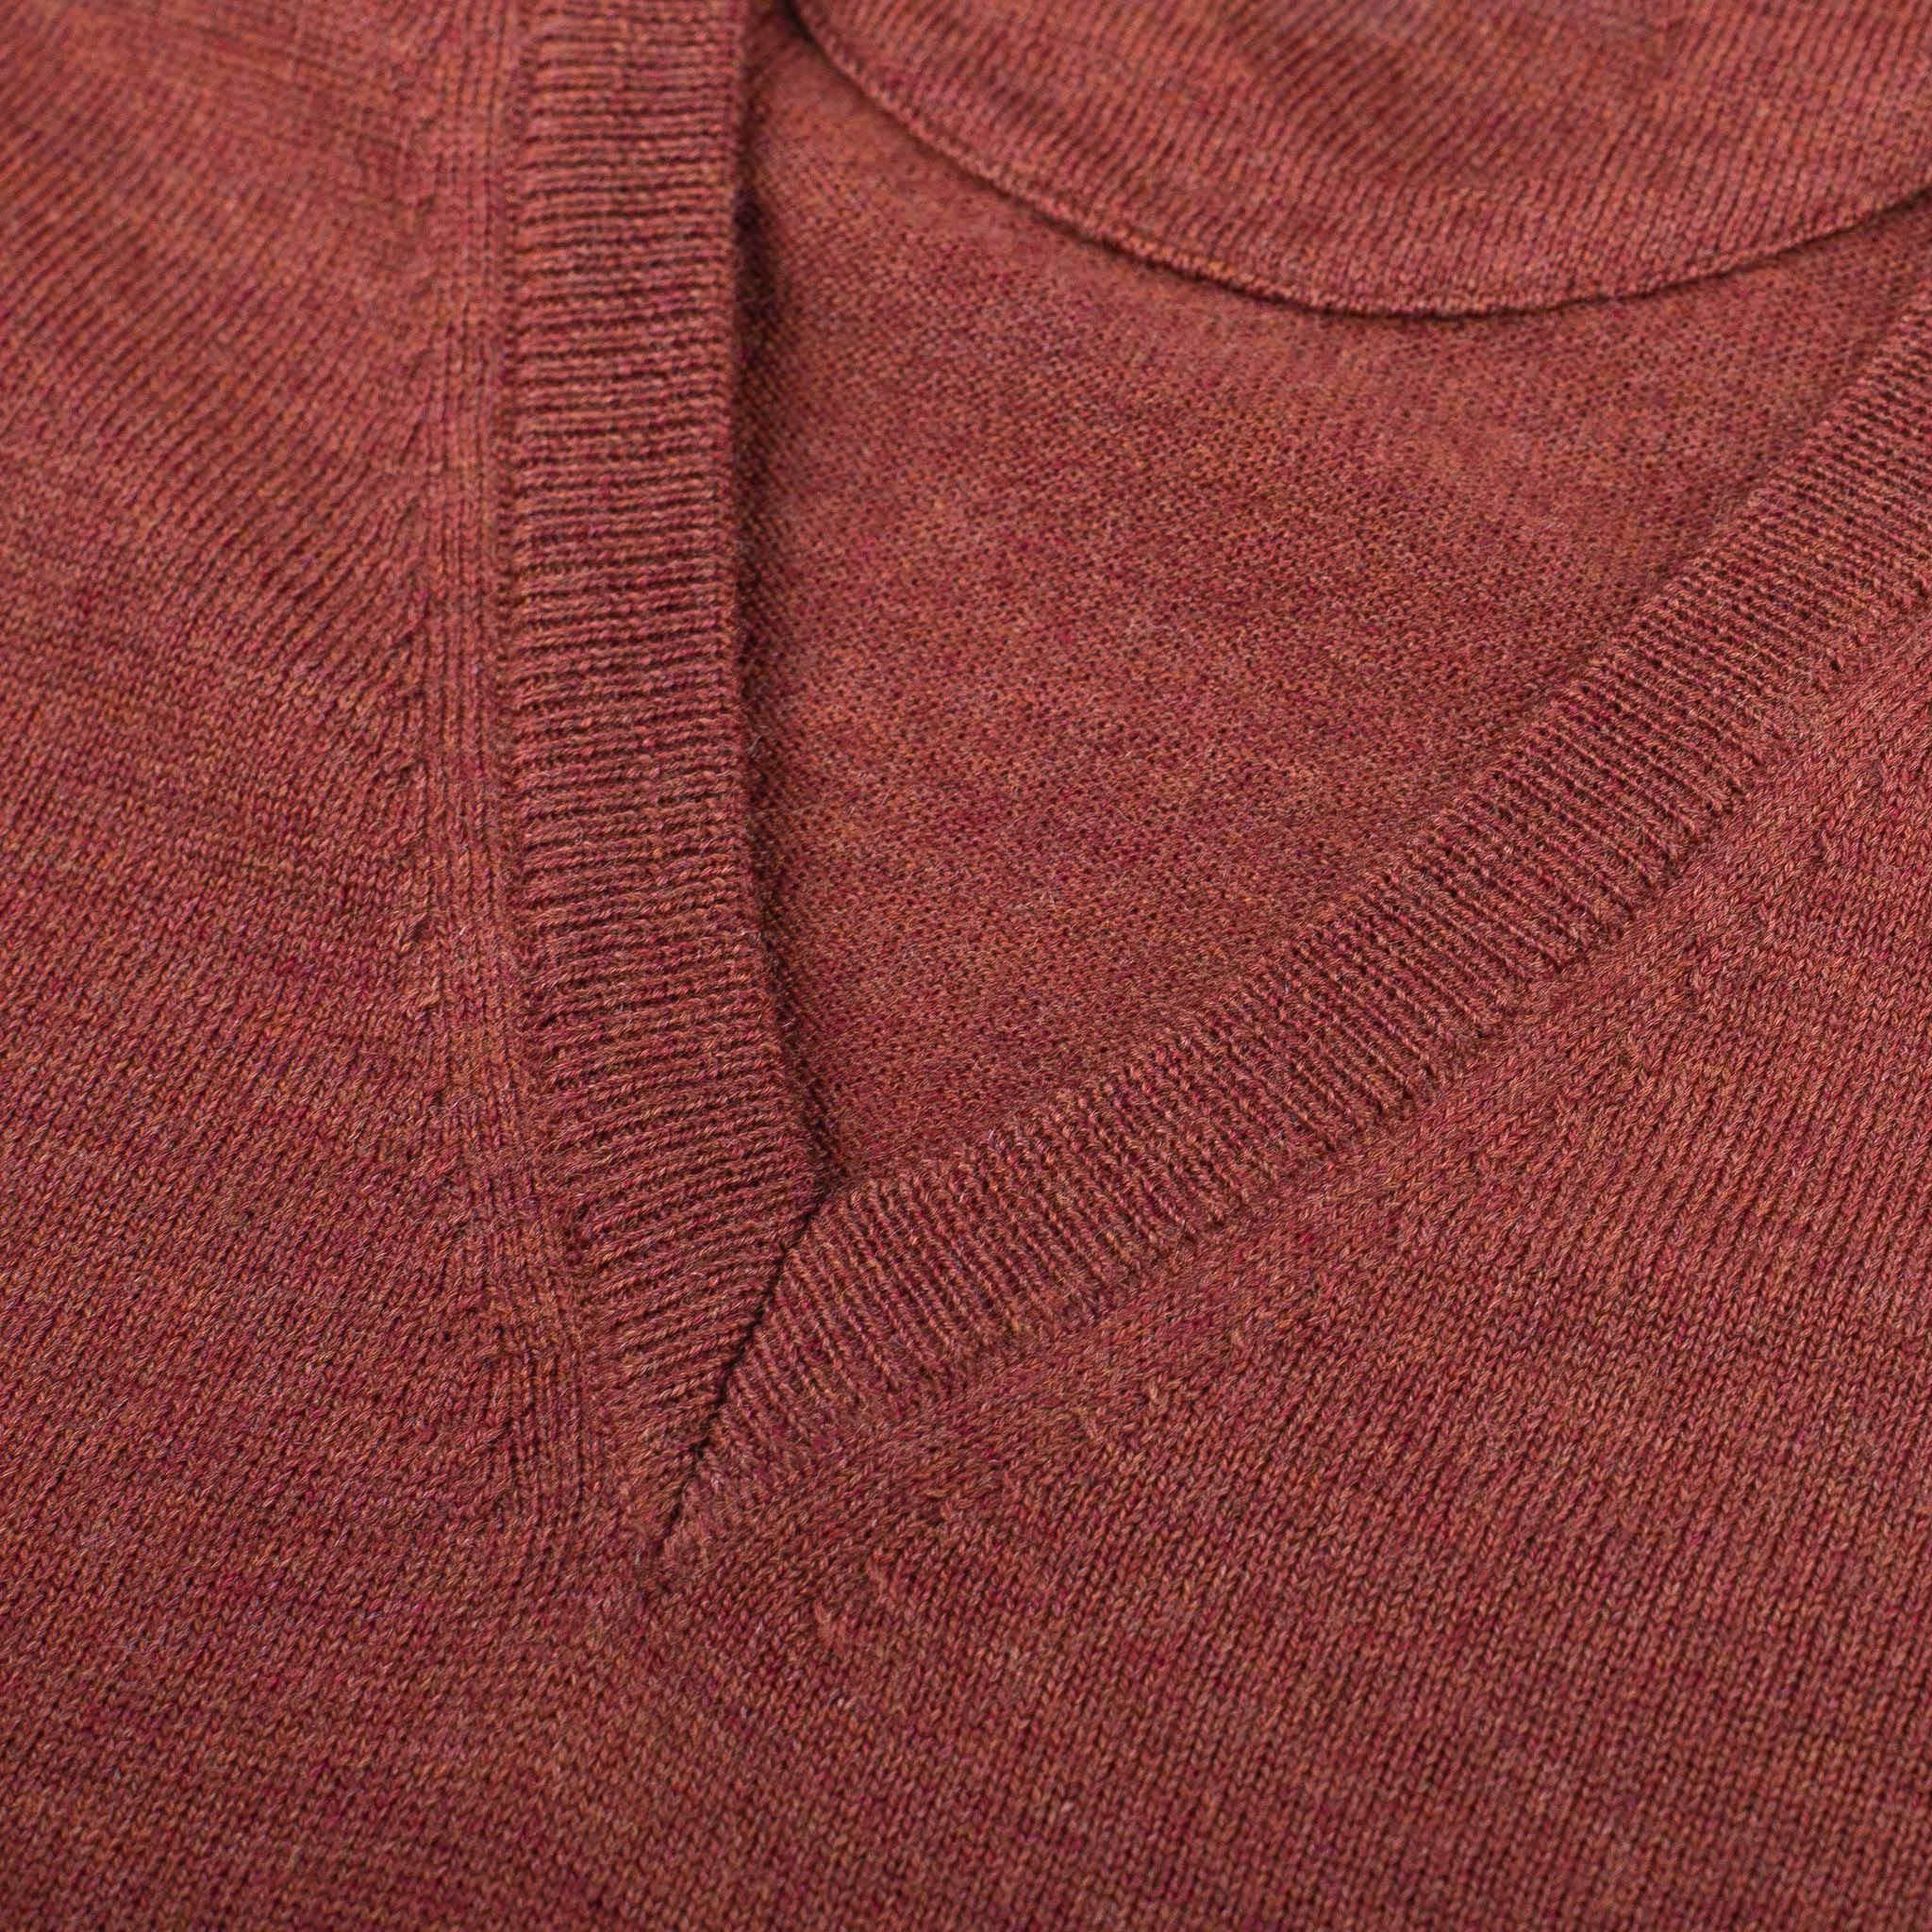 V-NECK-PULLOVER-JERSEY-CUELLO-DE-PICO-01-05-The-Seëlk-7